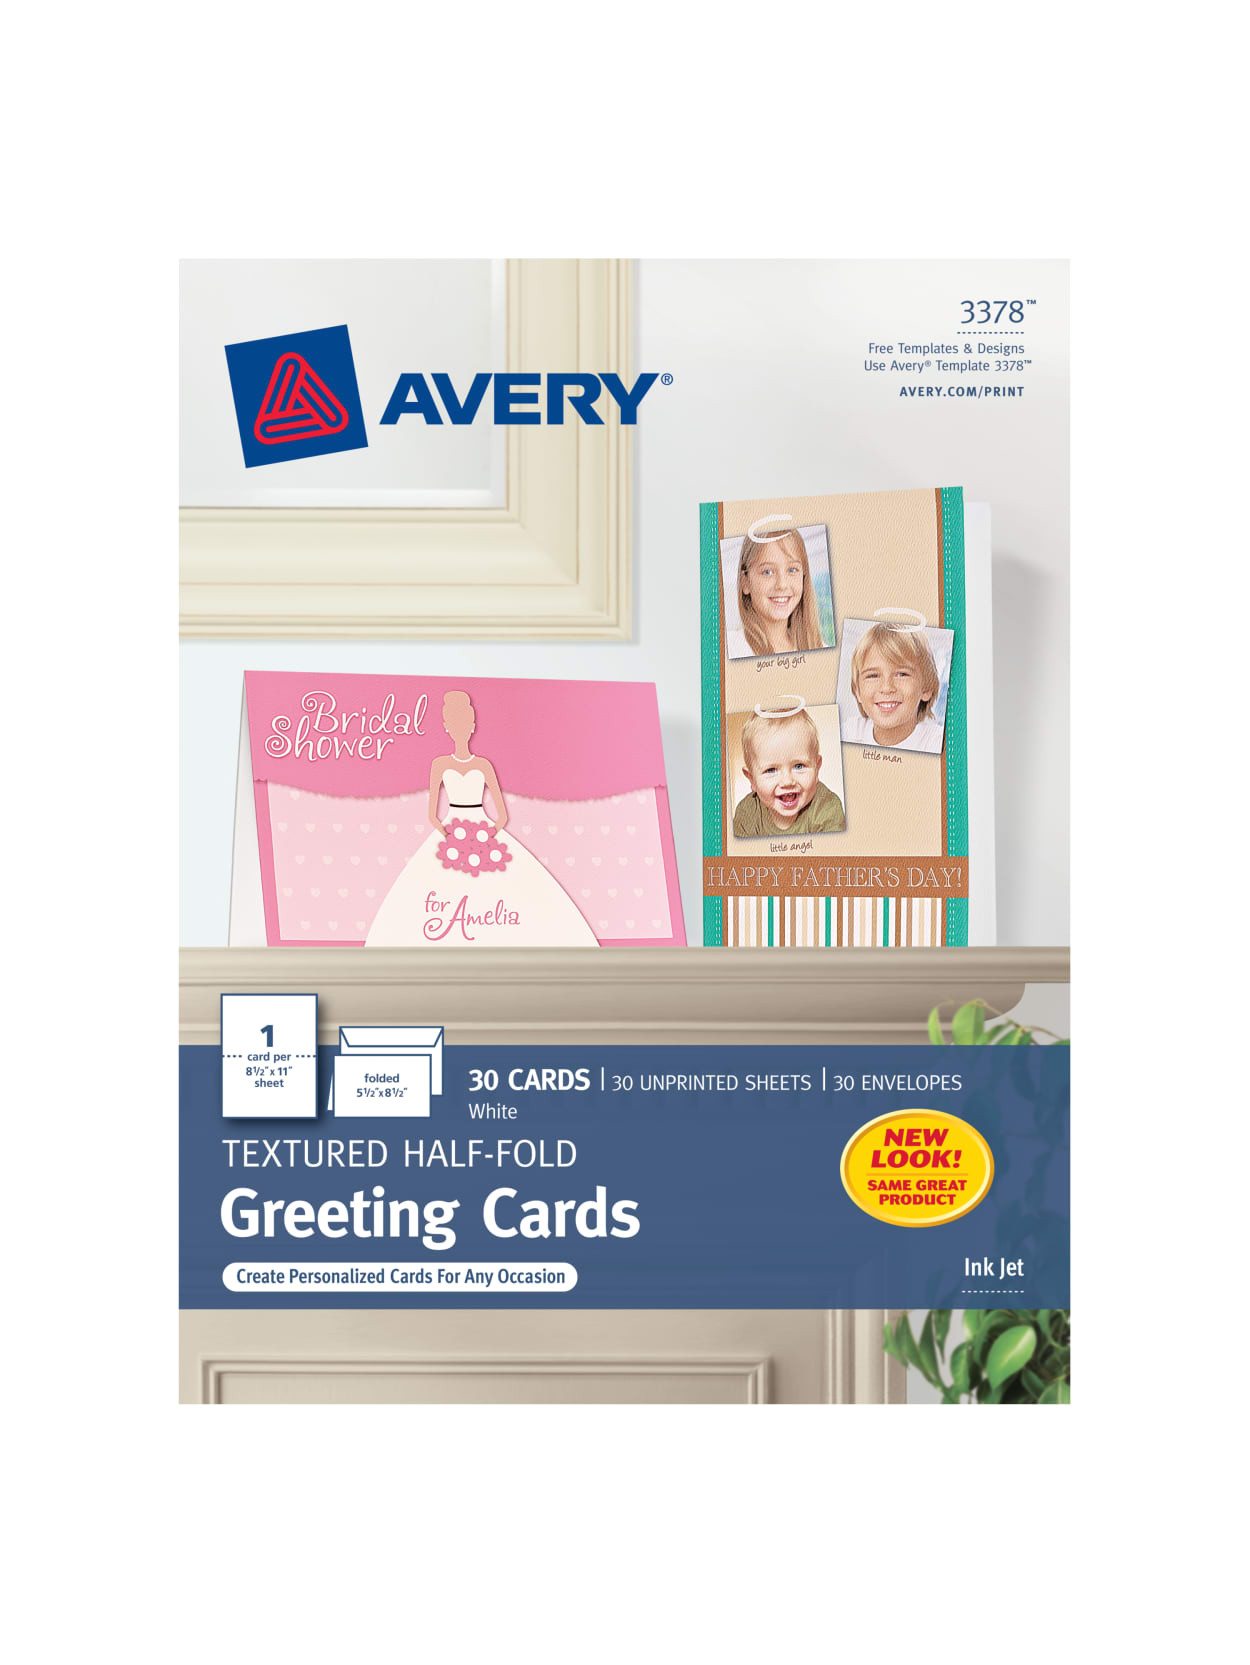 Quarter Fold Thank You Card Template Avery Half Fold Textured Greeting Cards 5 12 X 8 12 White